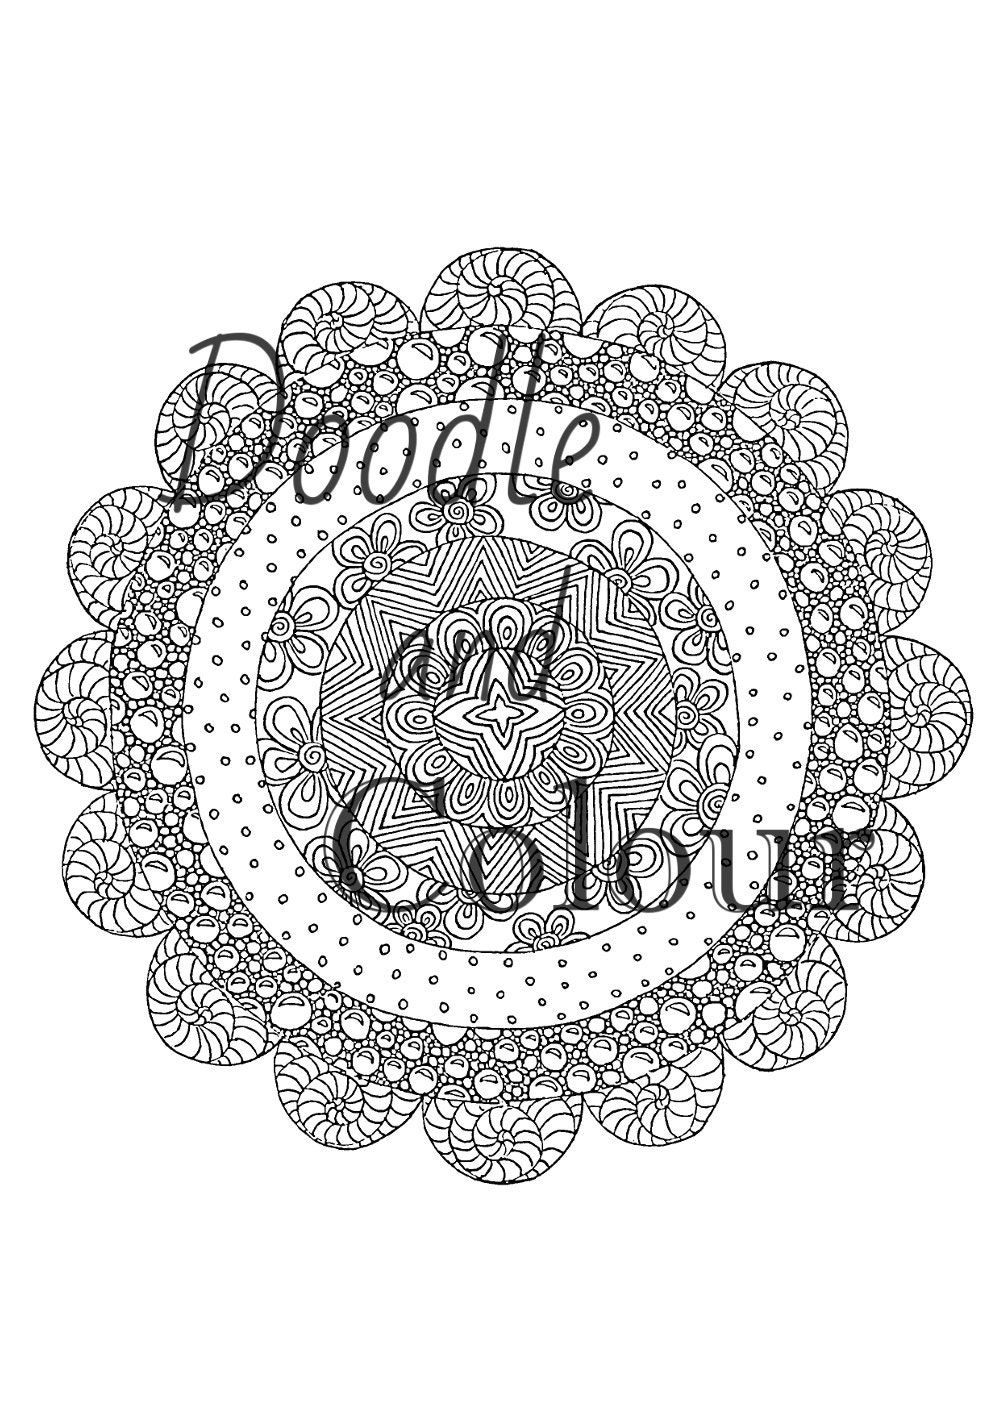 coloring pages adults circle - photo#32